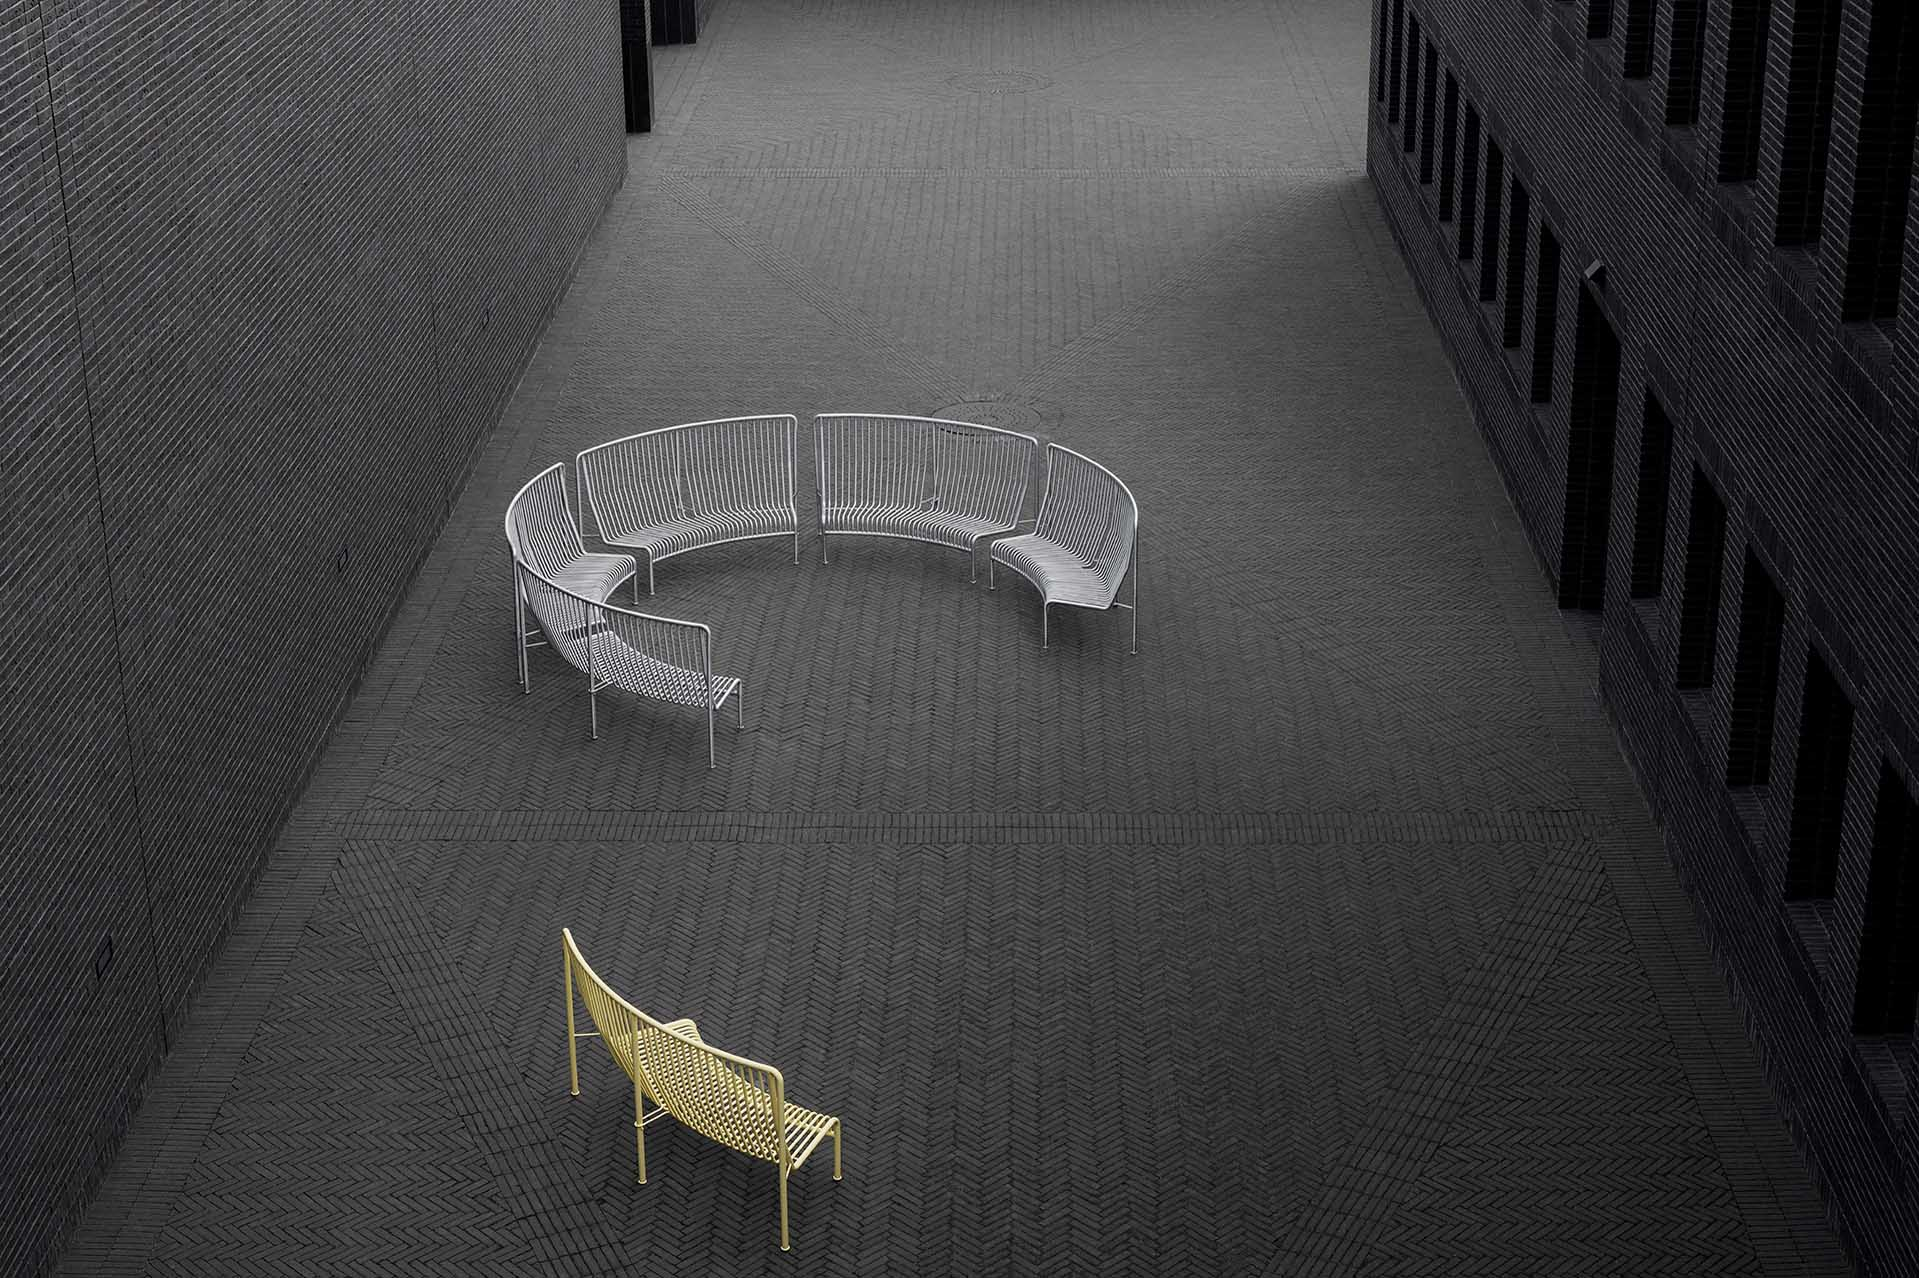 New finds from the Stockholm Furniture Fair 2020 - the 'Roadie' outdoor bench from Massproductions | These Four Walls blog